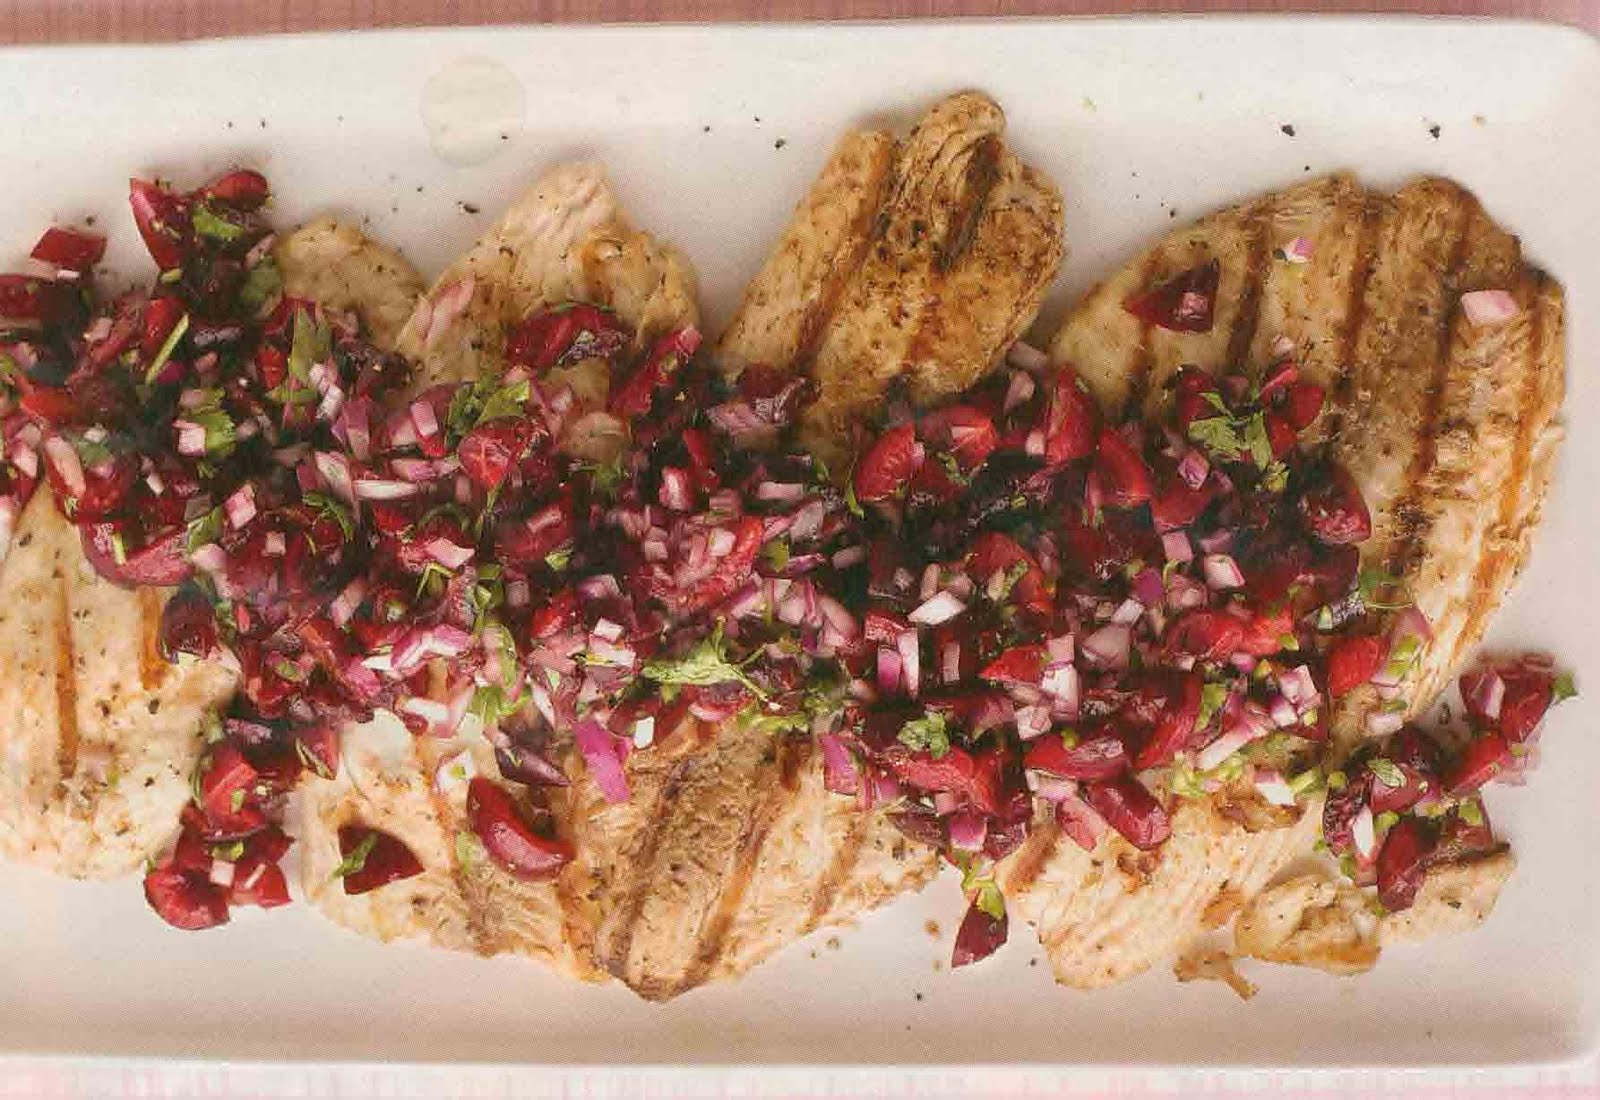 ... throughout 2 to 3 minutes serve tilapia topped with cherry salsa